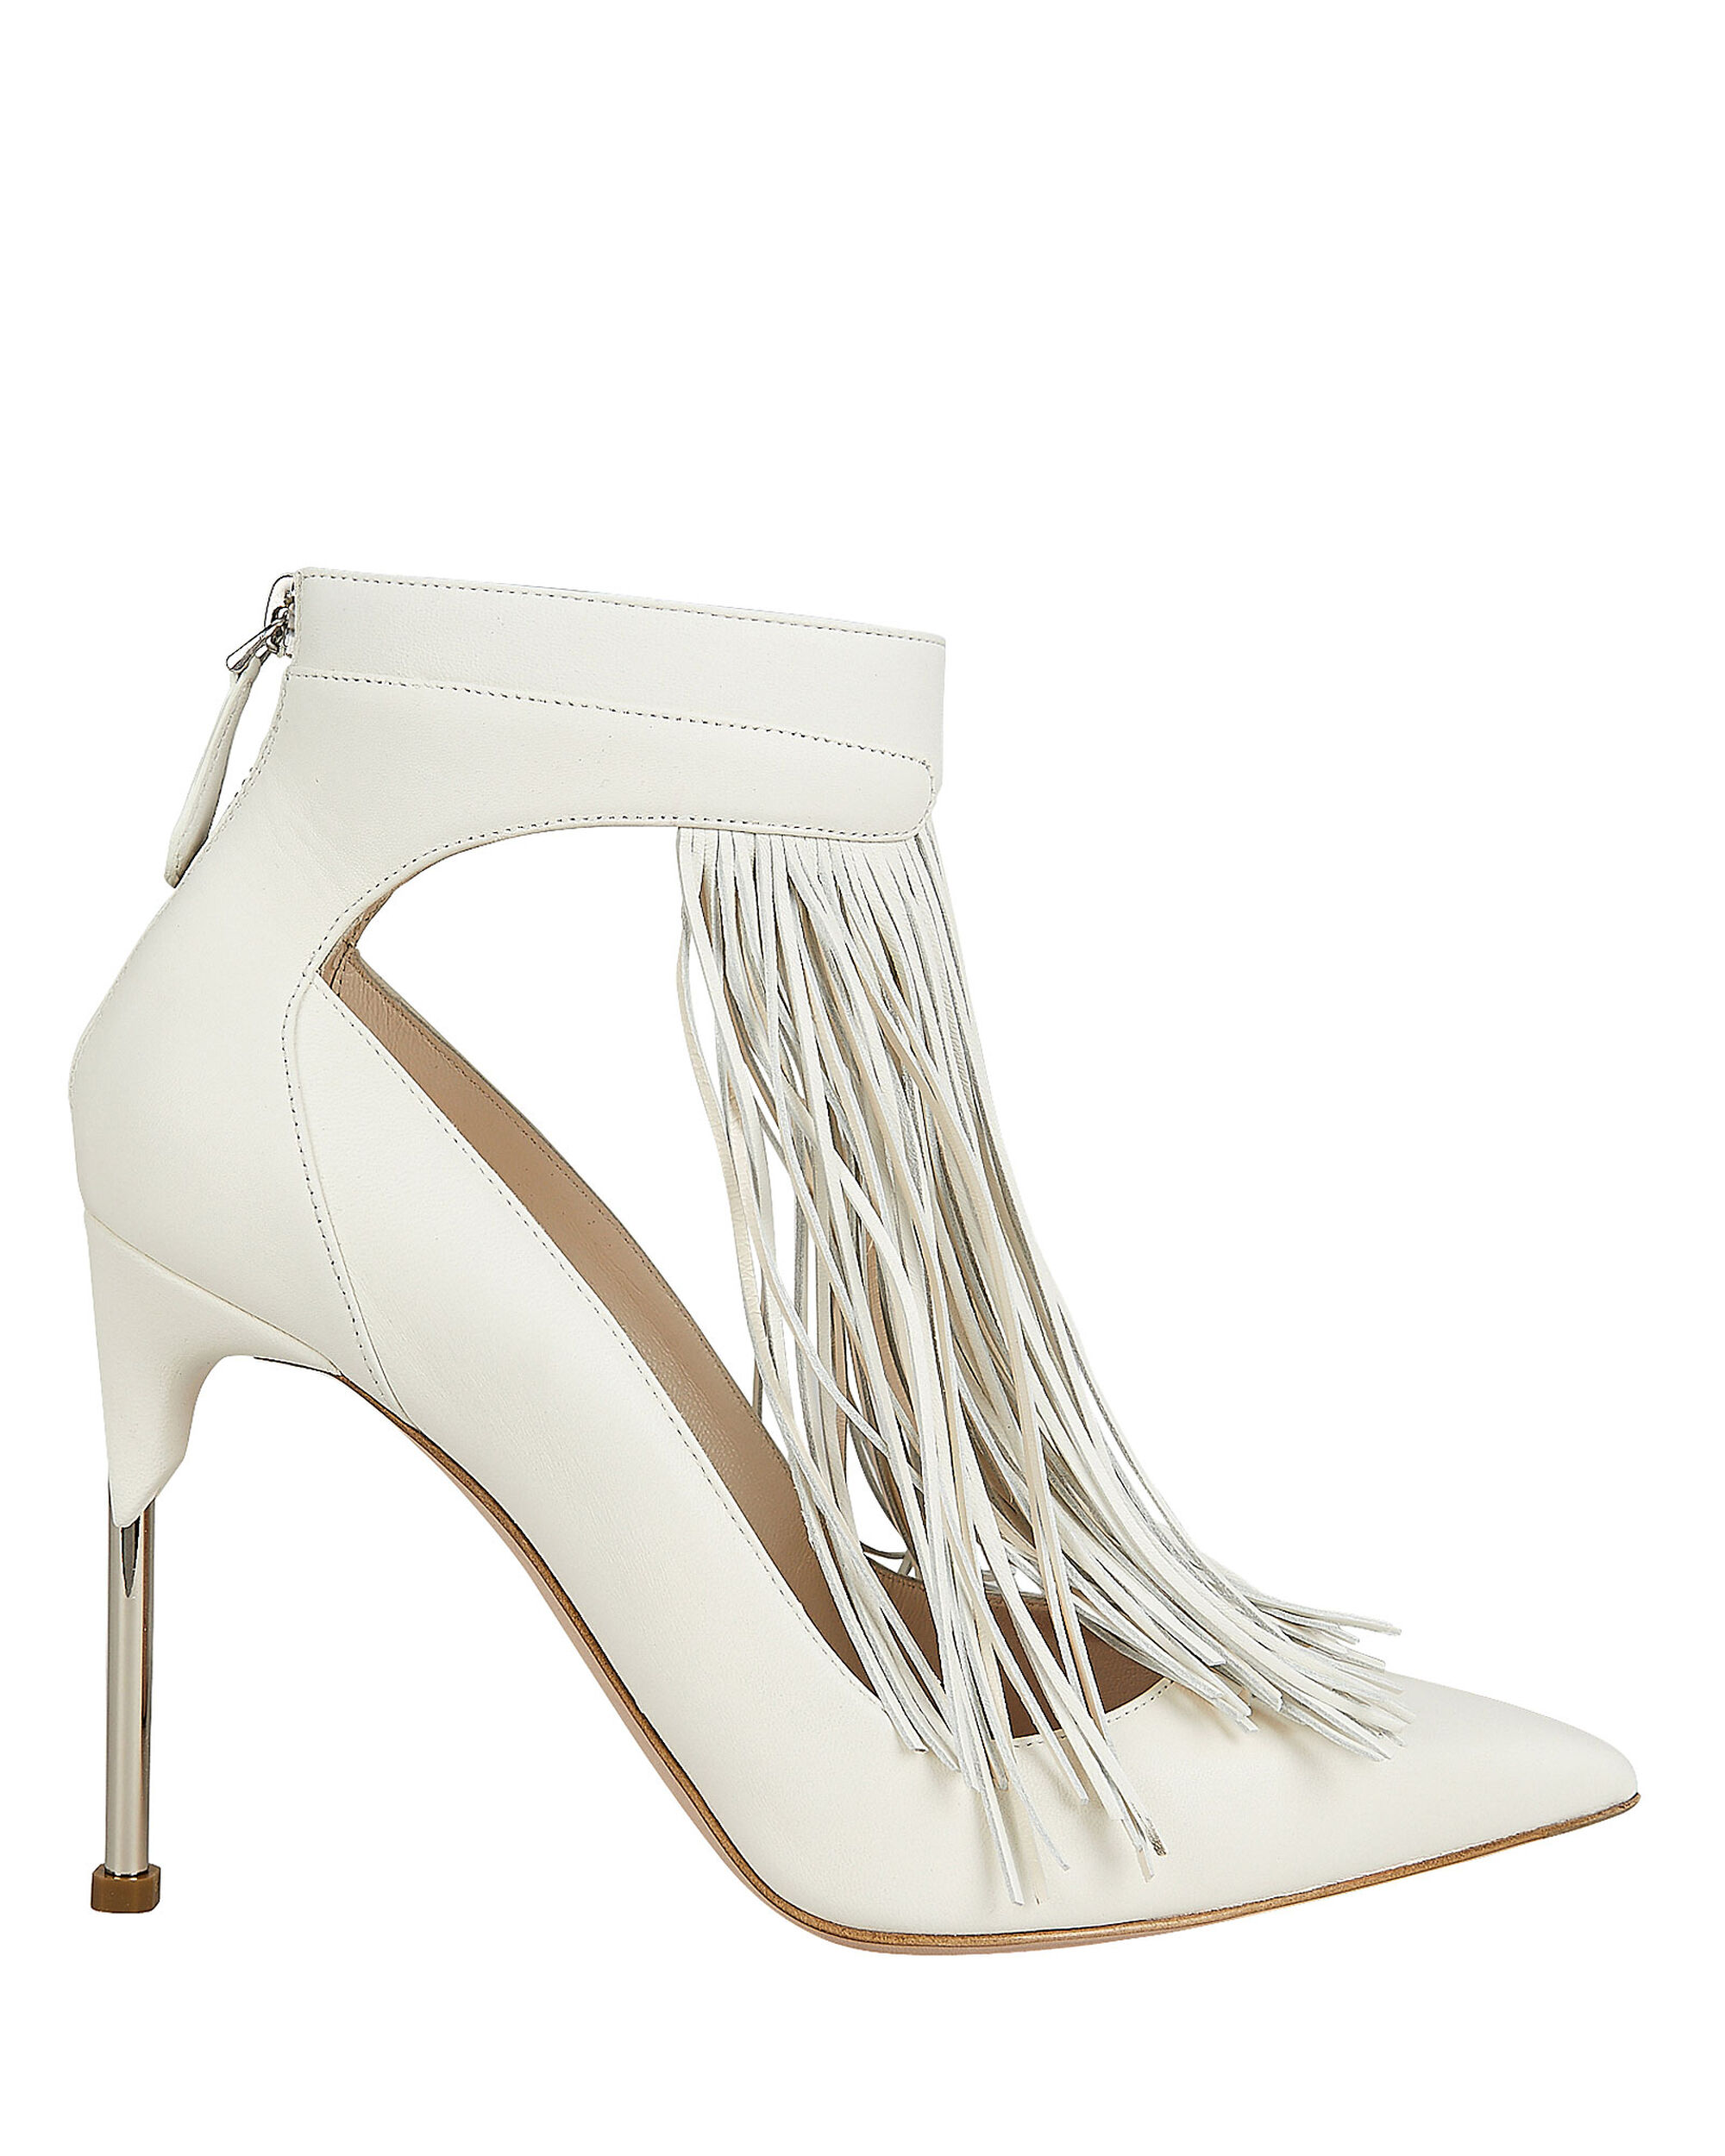 Silver Fringe Stiletto Pumps, IVORY, hi-res